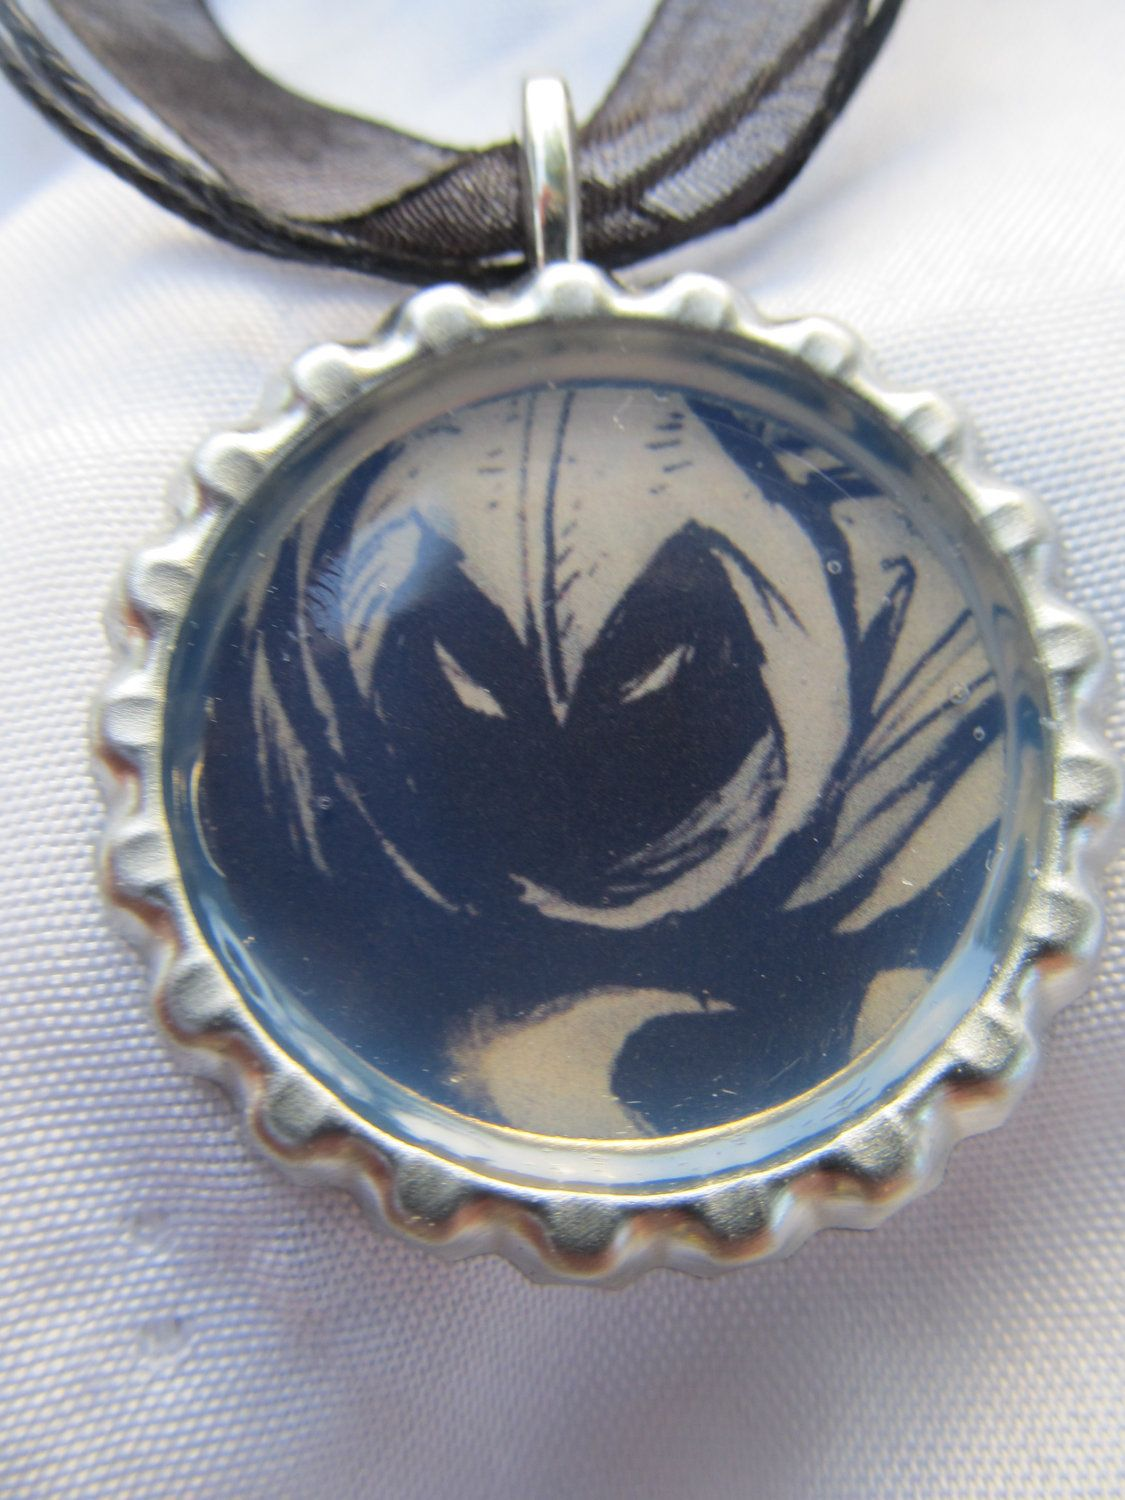 Marvel Comics' Moon Knight bottle cap necklace with organza cord - from a real comic book. $6.99, via Etsy.